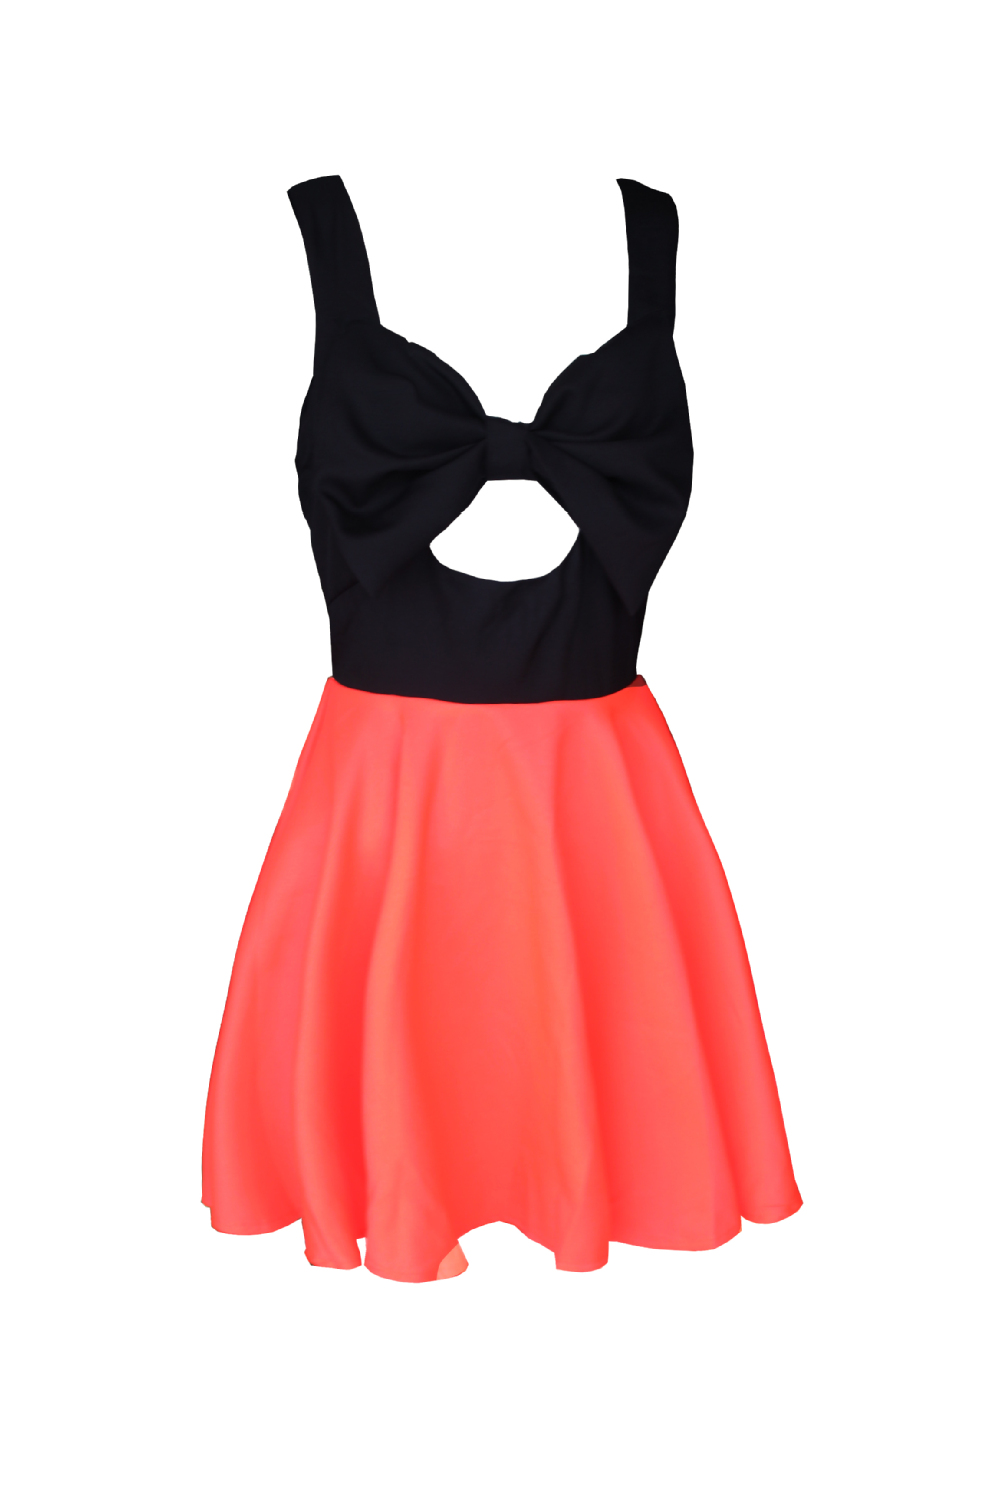 Free shiping Hollow chest bow  dress  party dress Hollow halter dress-in Apparel & Accessories on Aliexpress.com